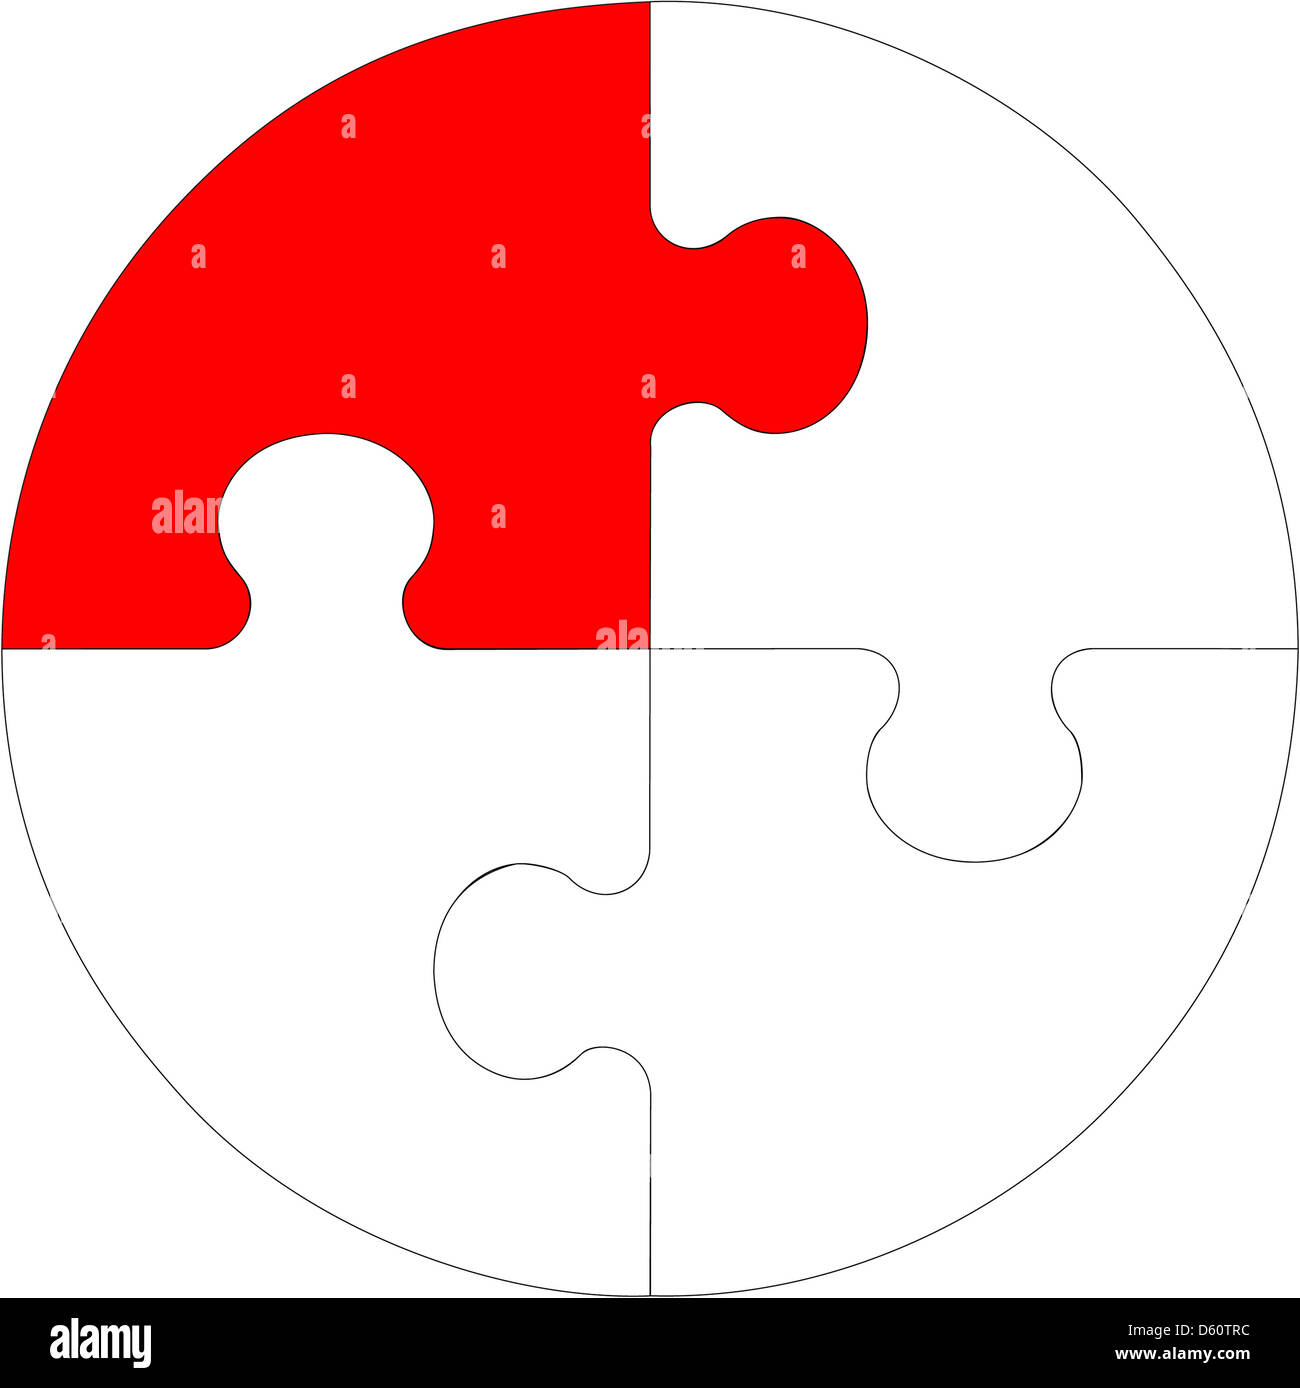 Abstract puzzle 10 - Stock Image